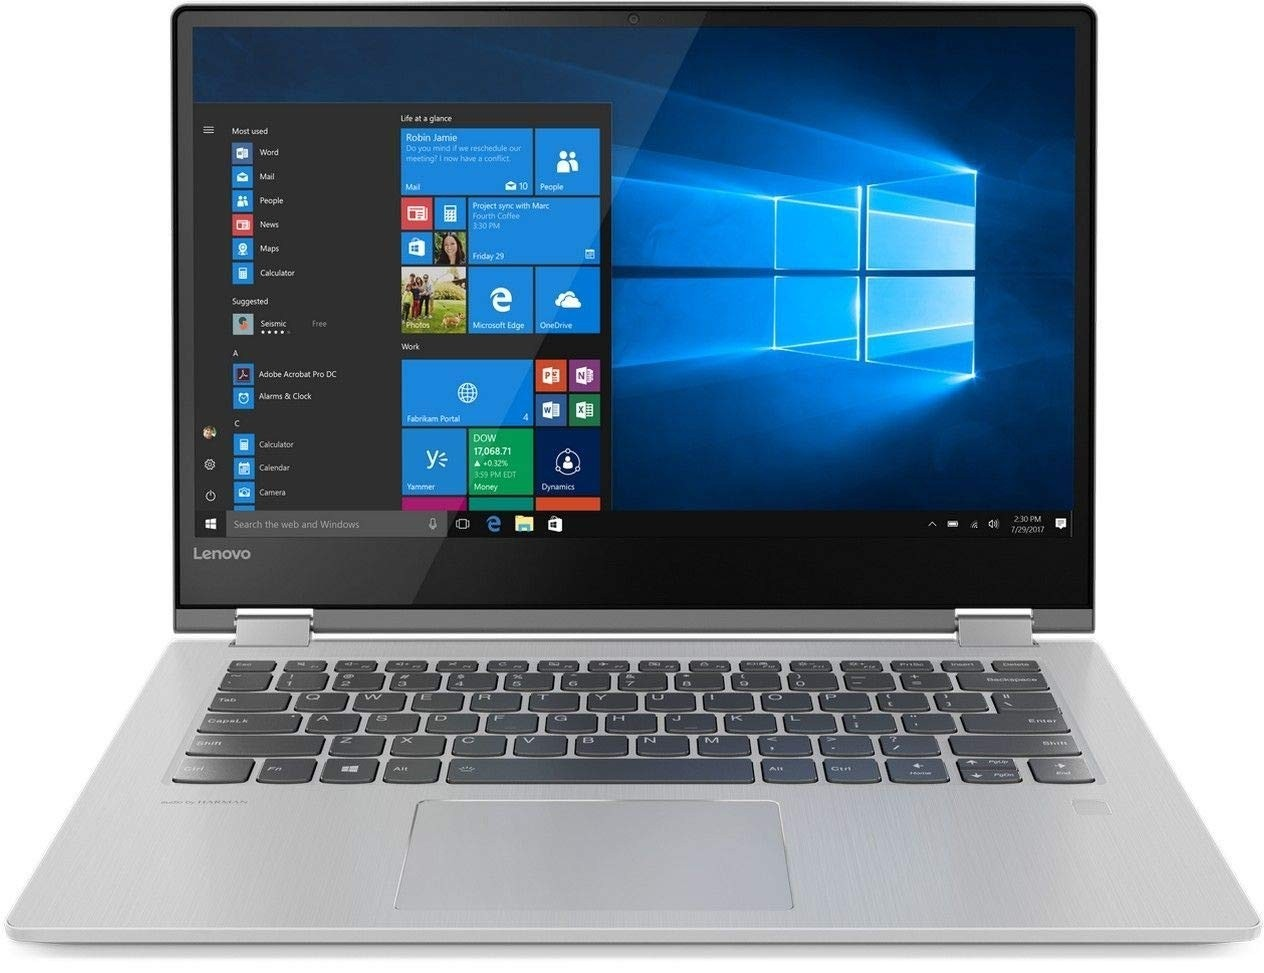 Refurbished laptops & desktops - Refurbished Lenovo YOGA 530-14IKB D  81EK00ACIN/Intel Ci5-8250U 1.6GHz/8GB/512GB SSD/2GB Nvidia Graphics/Win10 Home/14Inch FHD Touch/MINERIAL GREY